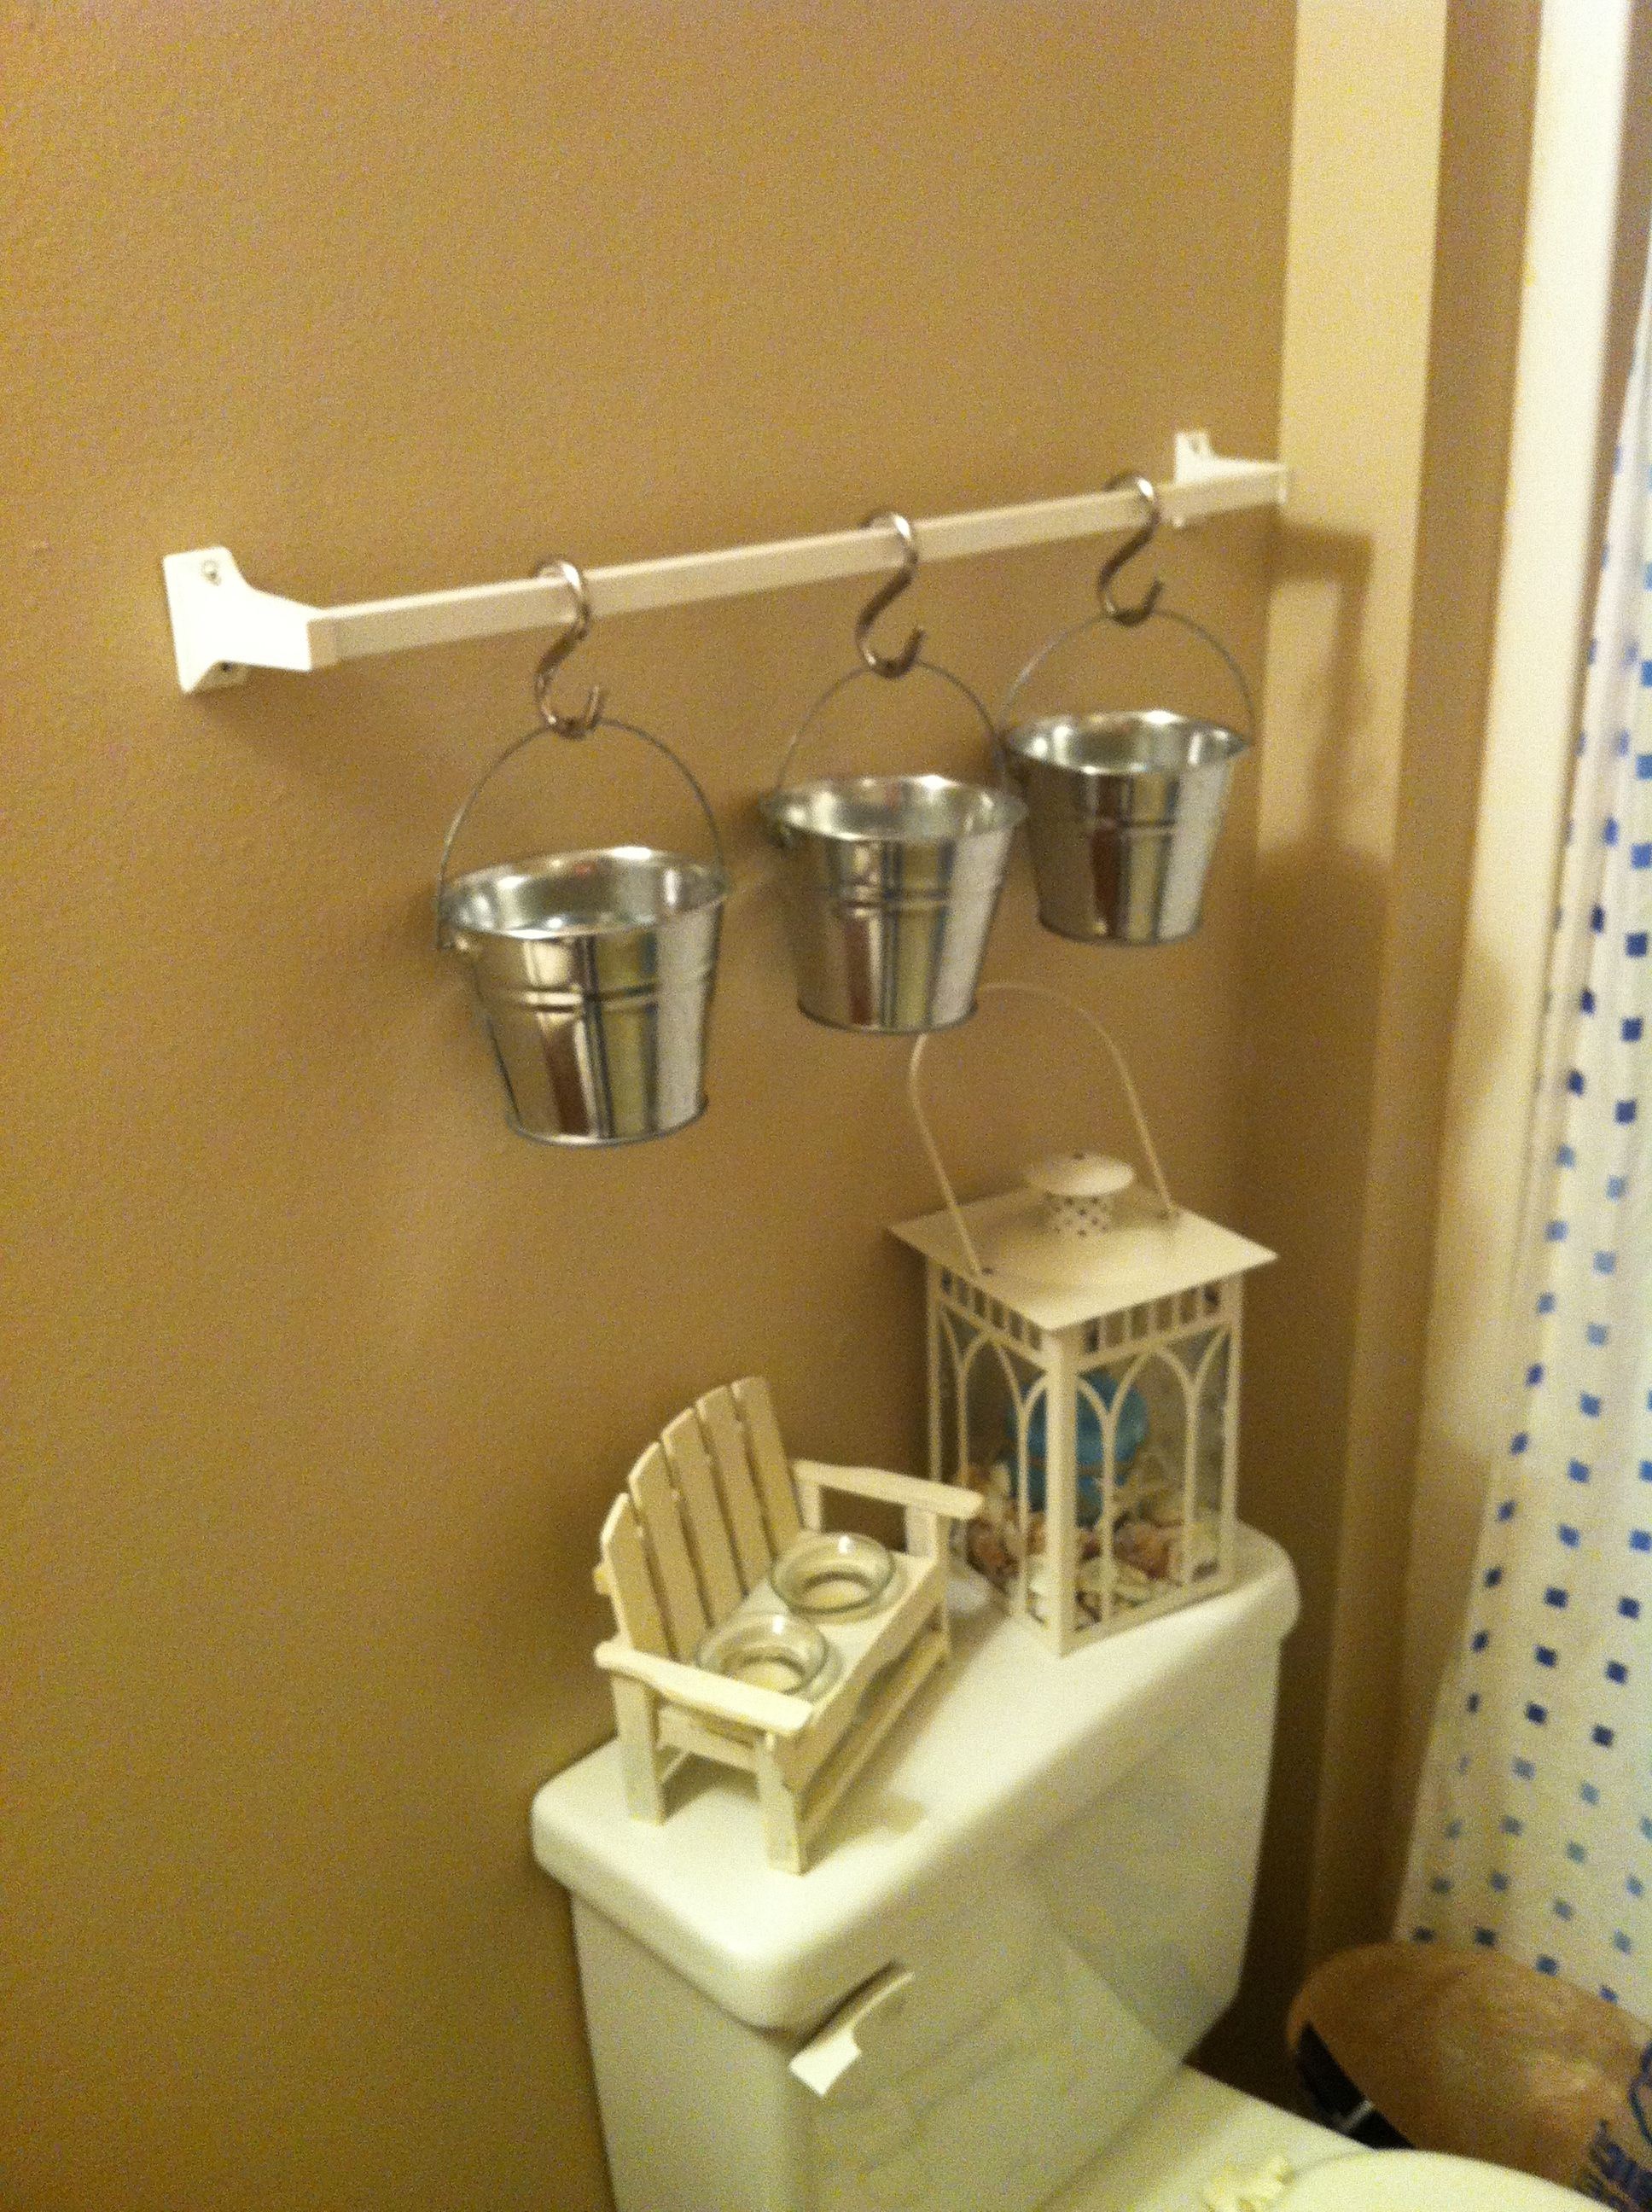 Homemade IKEA hanging totes! Picked up hooks from home depot! I got buckets from hobby lobby!